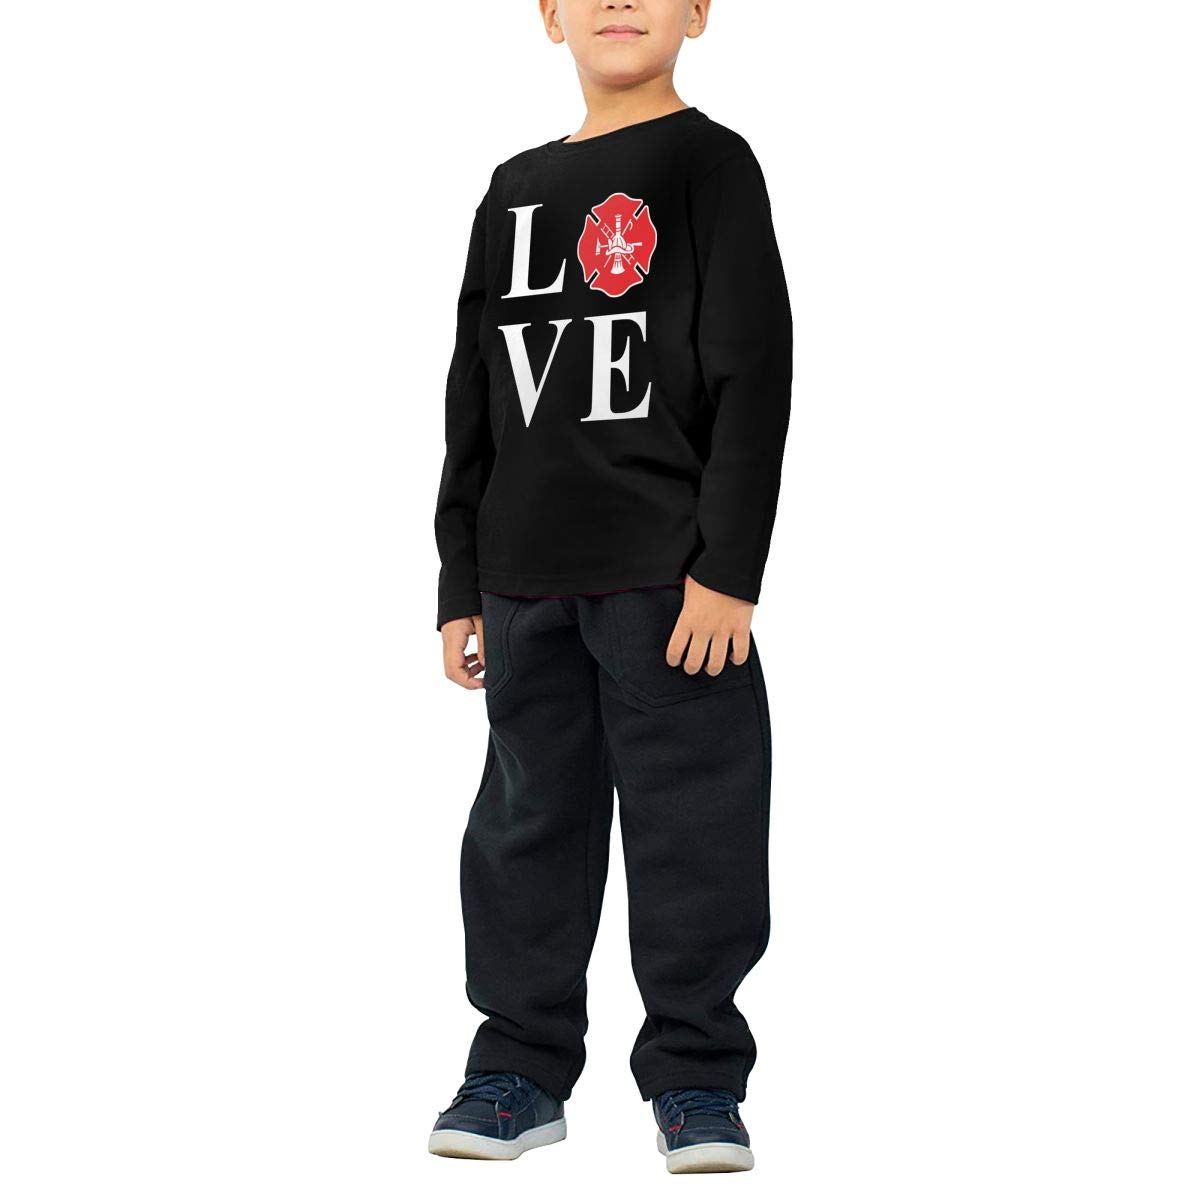 Love Firefighter Kids T-Shirt Long Sleeve Boys Girls T-Shirt